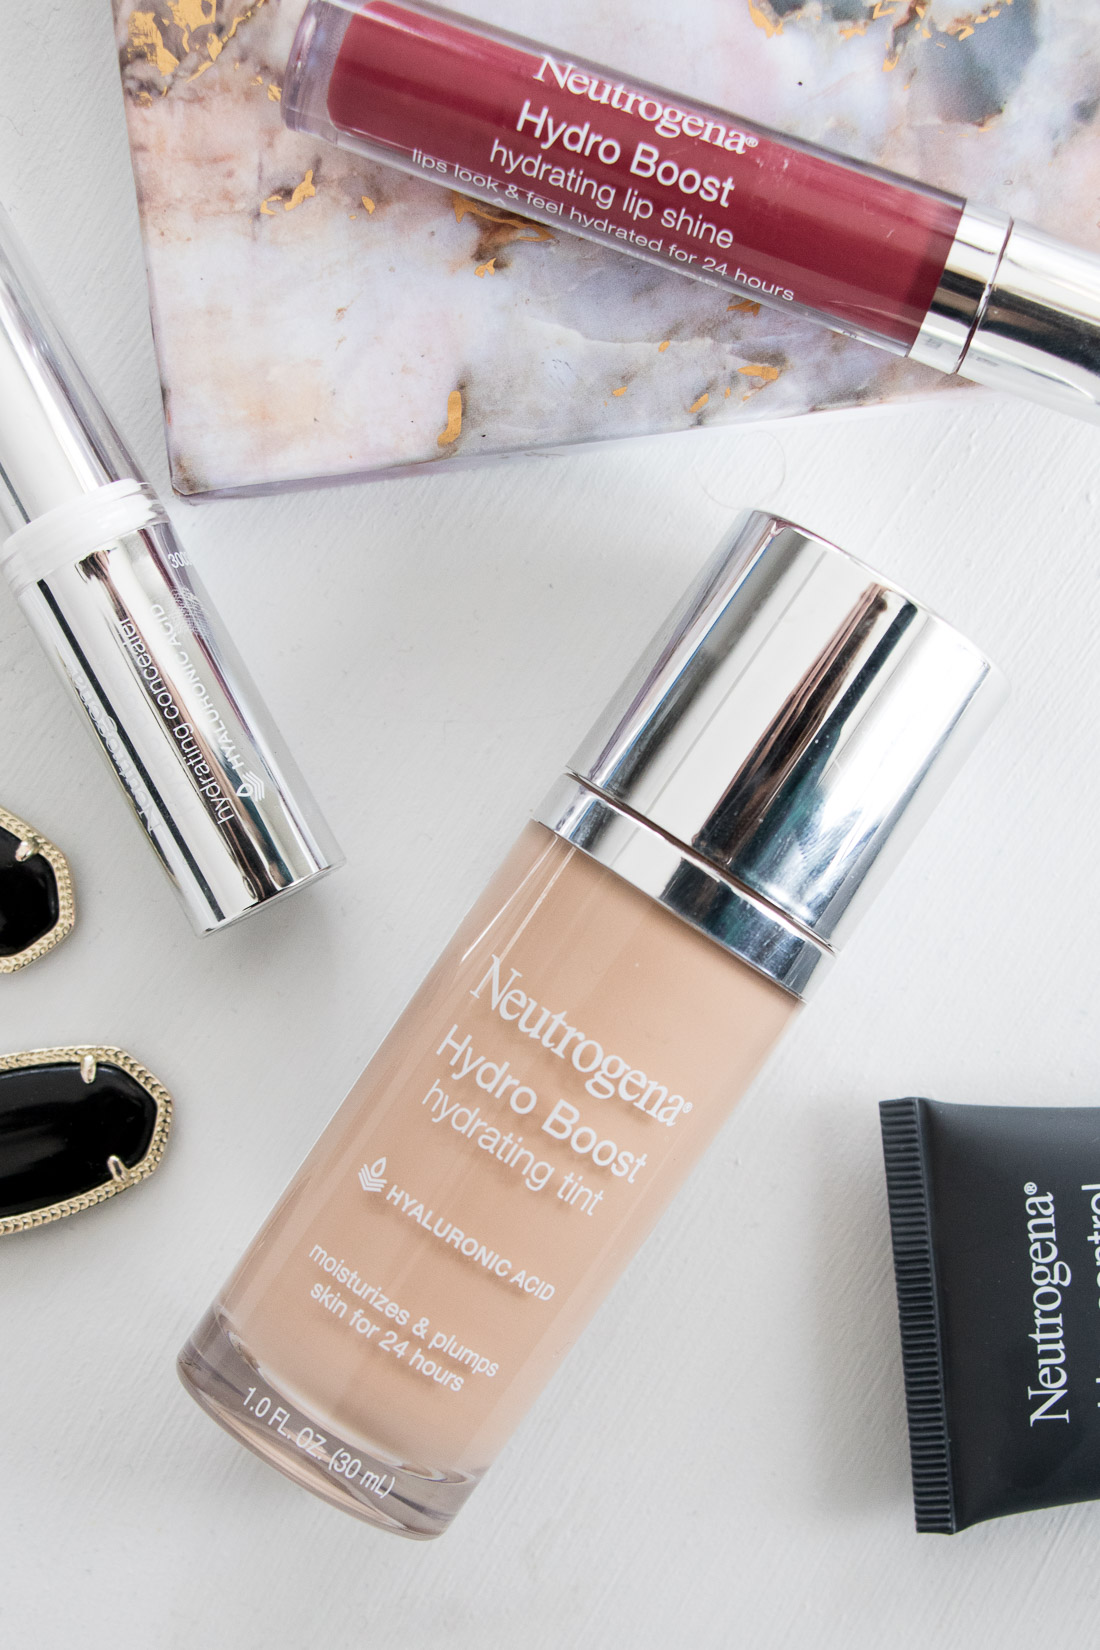 Review of Neutrogena Hydro Boost foundation - cream based foundations for dry skin and fine lines.